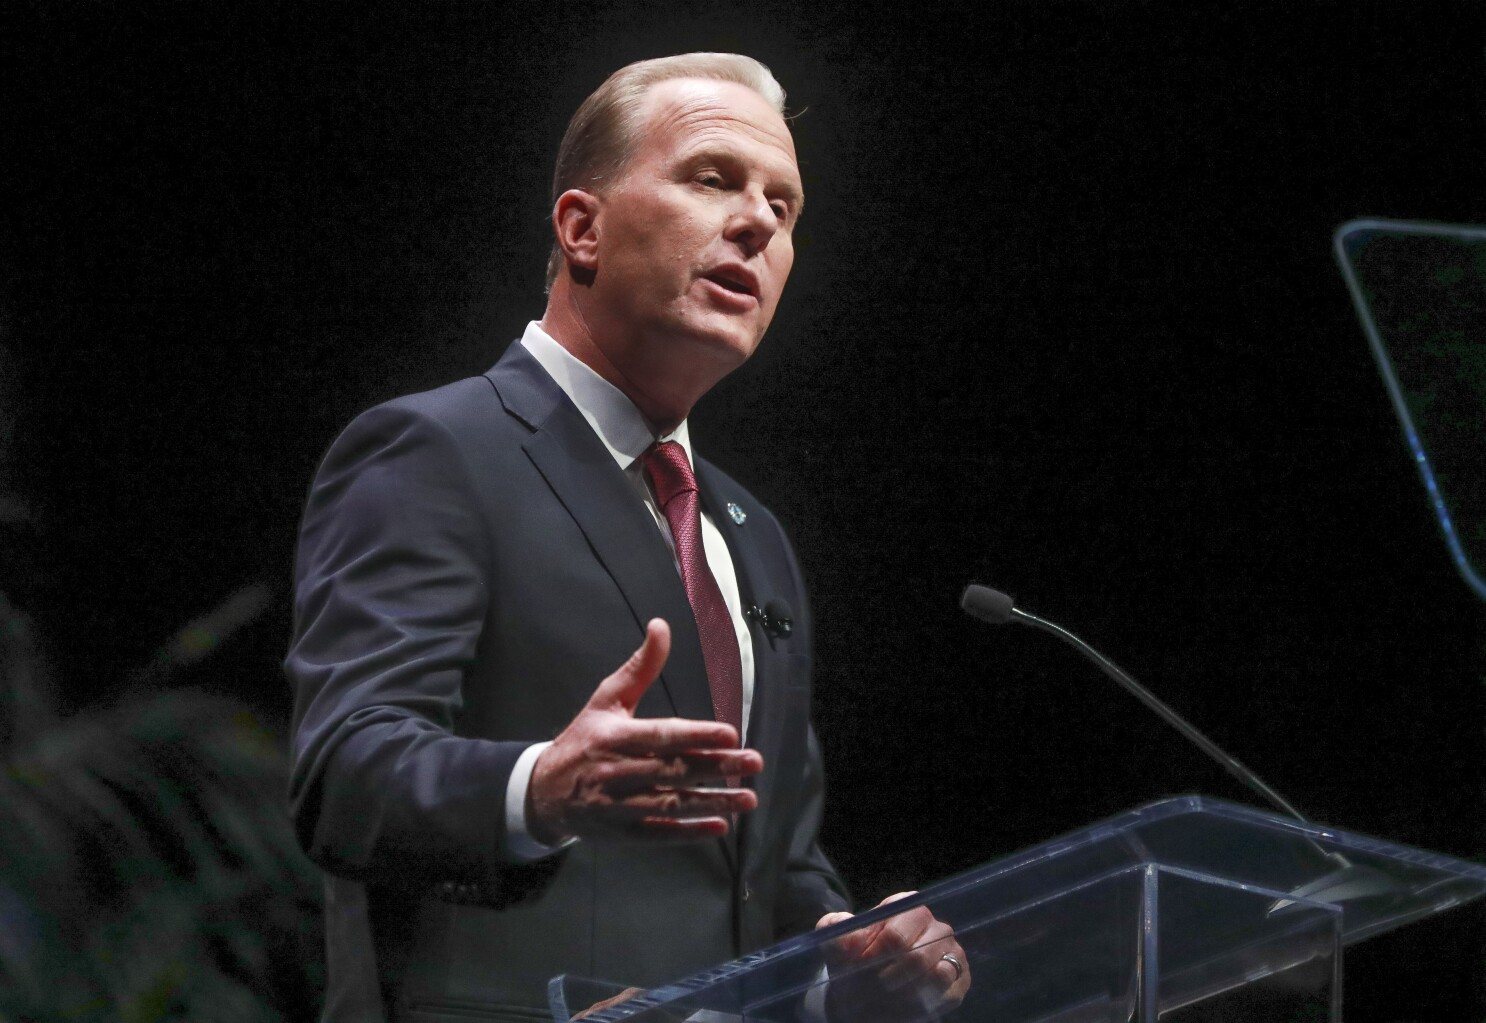 Faulconer's pledges on homelessness catch advocates, activists by surprise